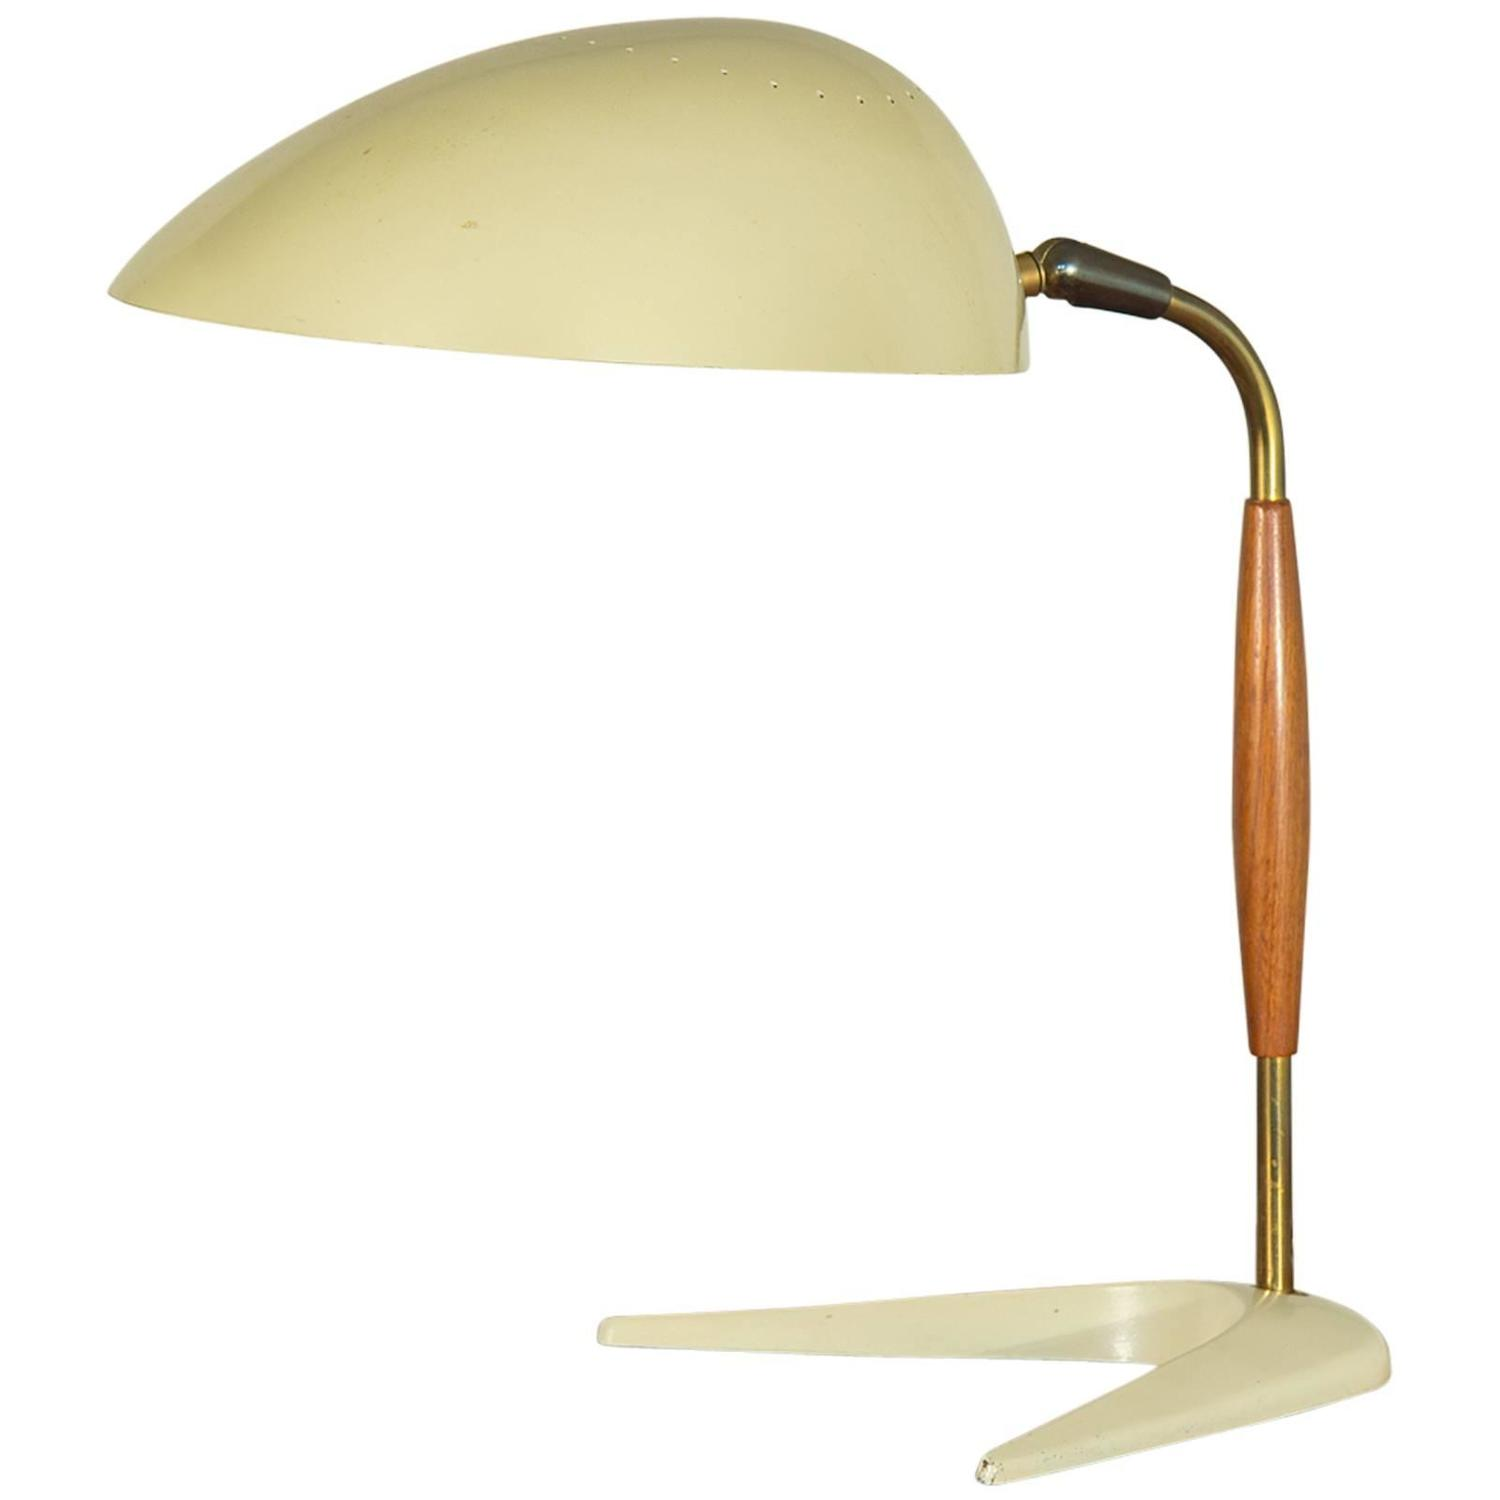 Gerald thurston boomerang desk lamp for sale at 1stdibs geotapseo Image collections